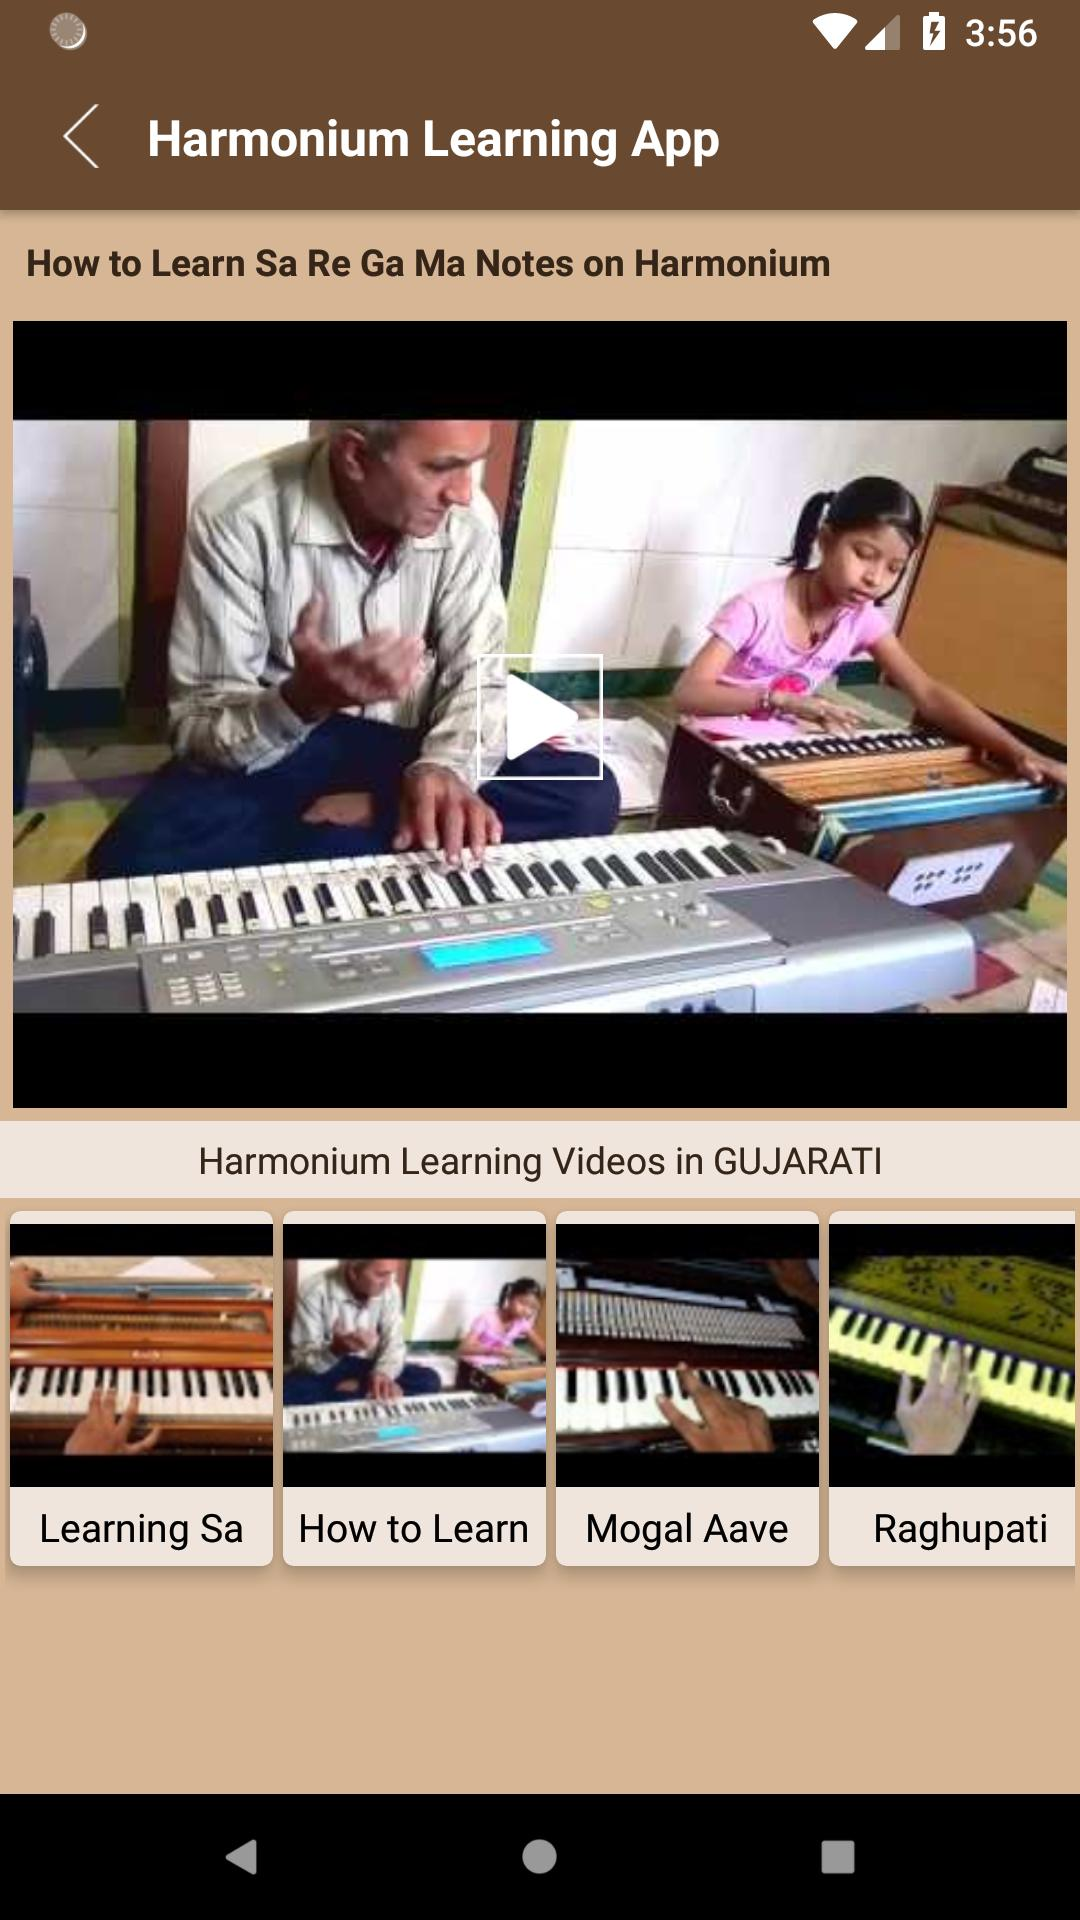 Harmonium Learning App for Android - APK Download